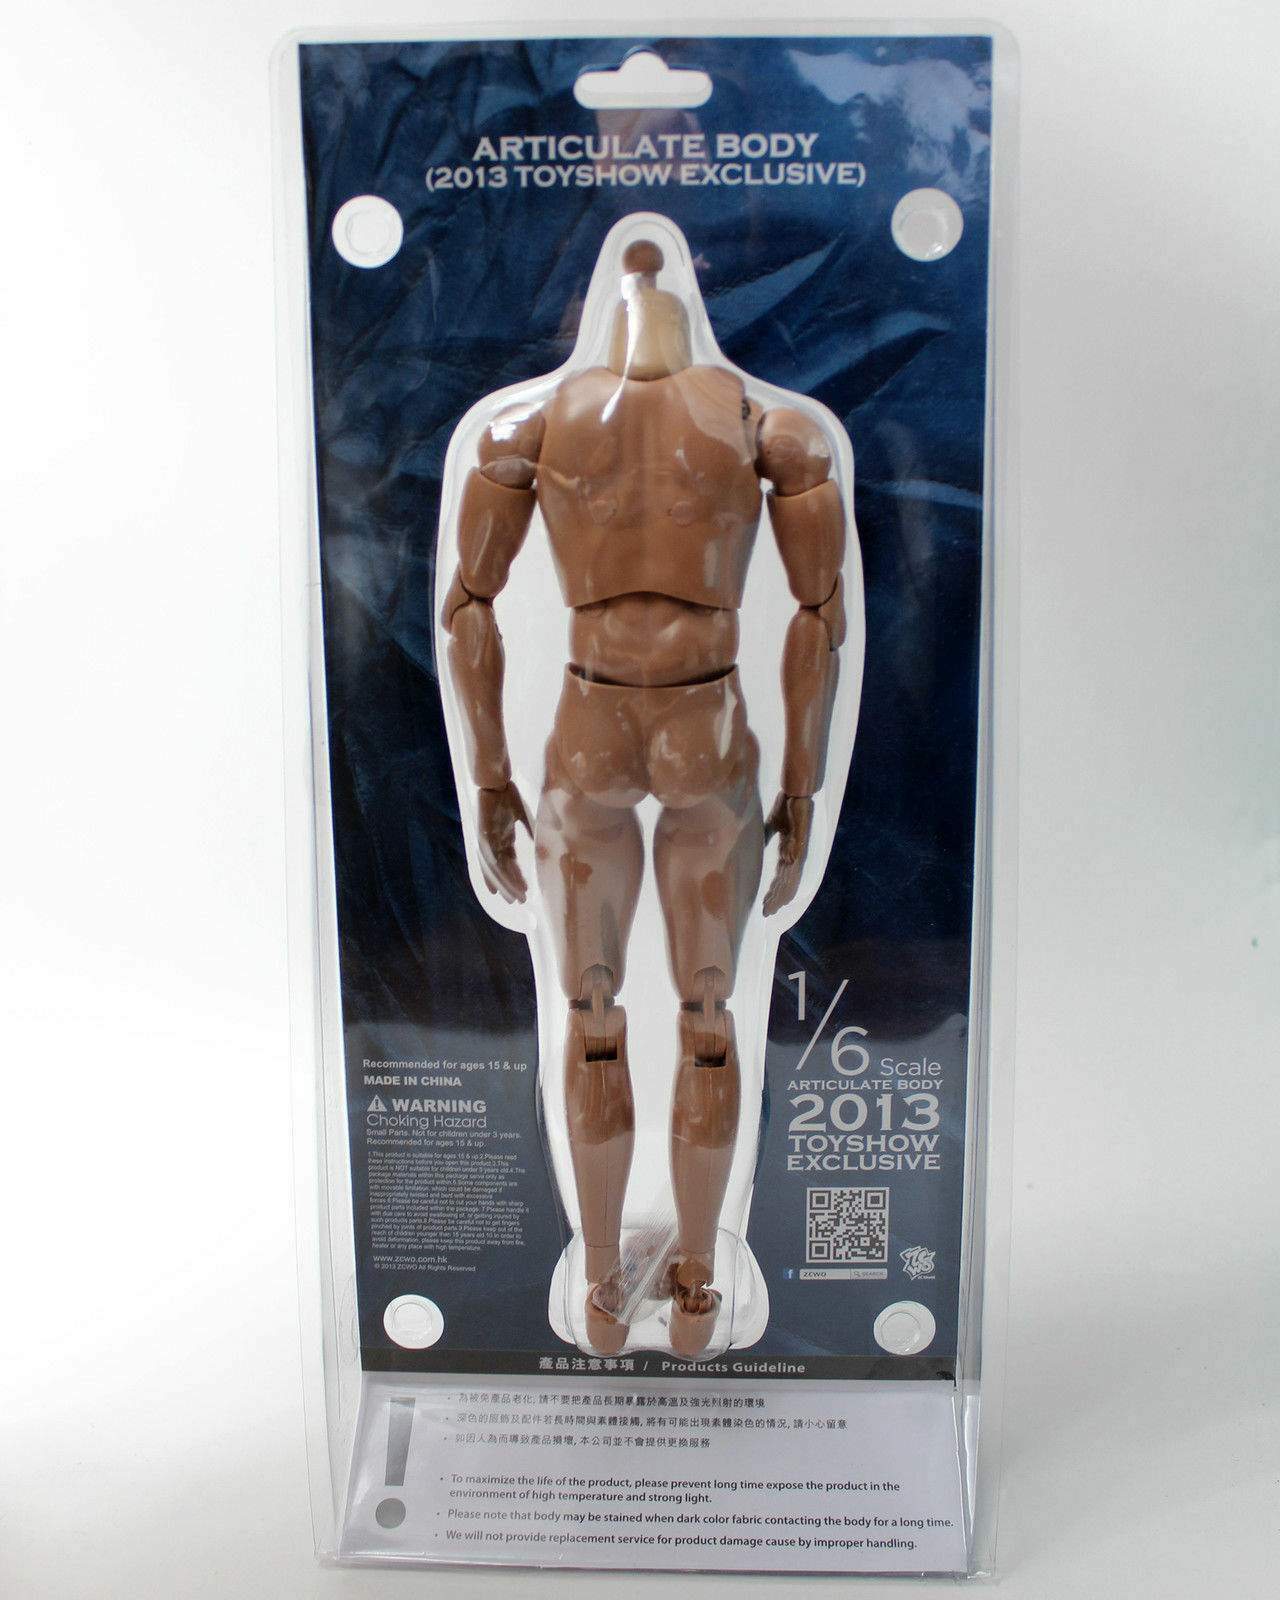 1 6 SCALE 2013 TOYSHOW EXCLUSIVE EXCLUSIVE EXCLUSIVE ARTICULATE BODY 02 601341